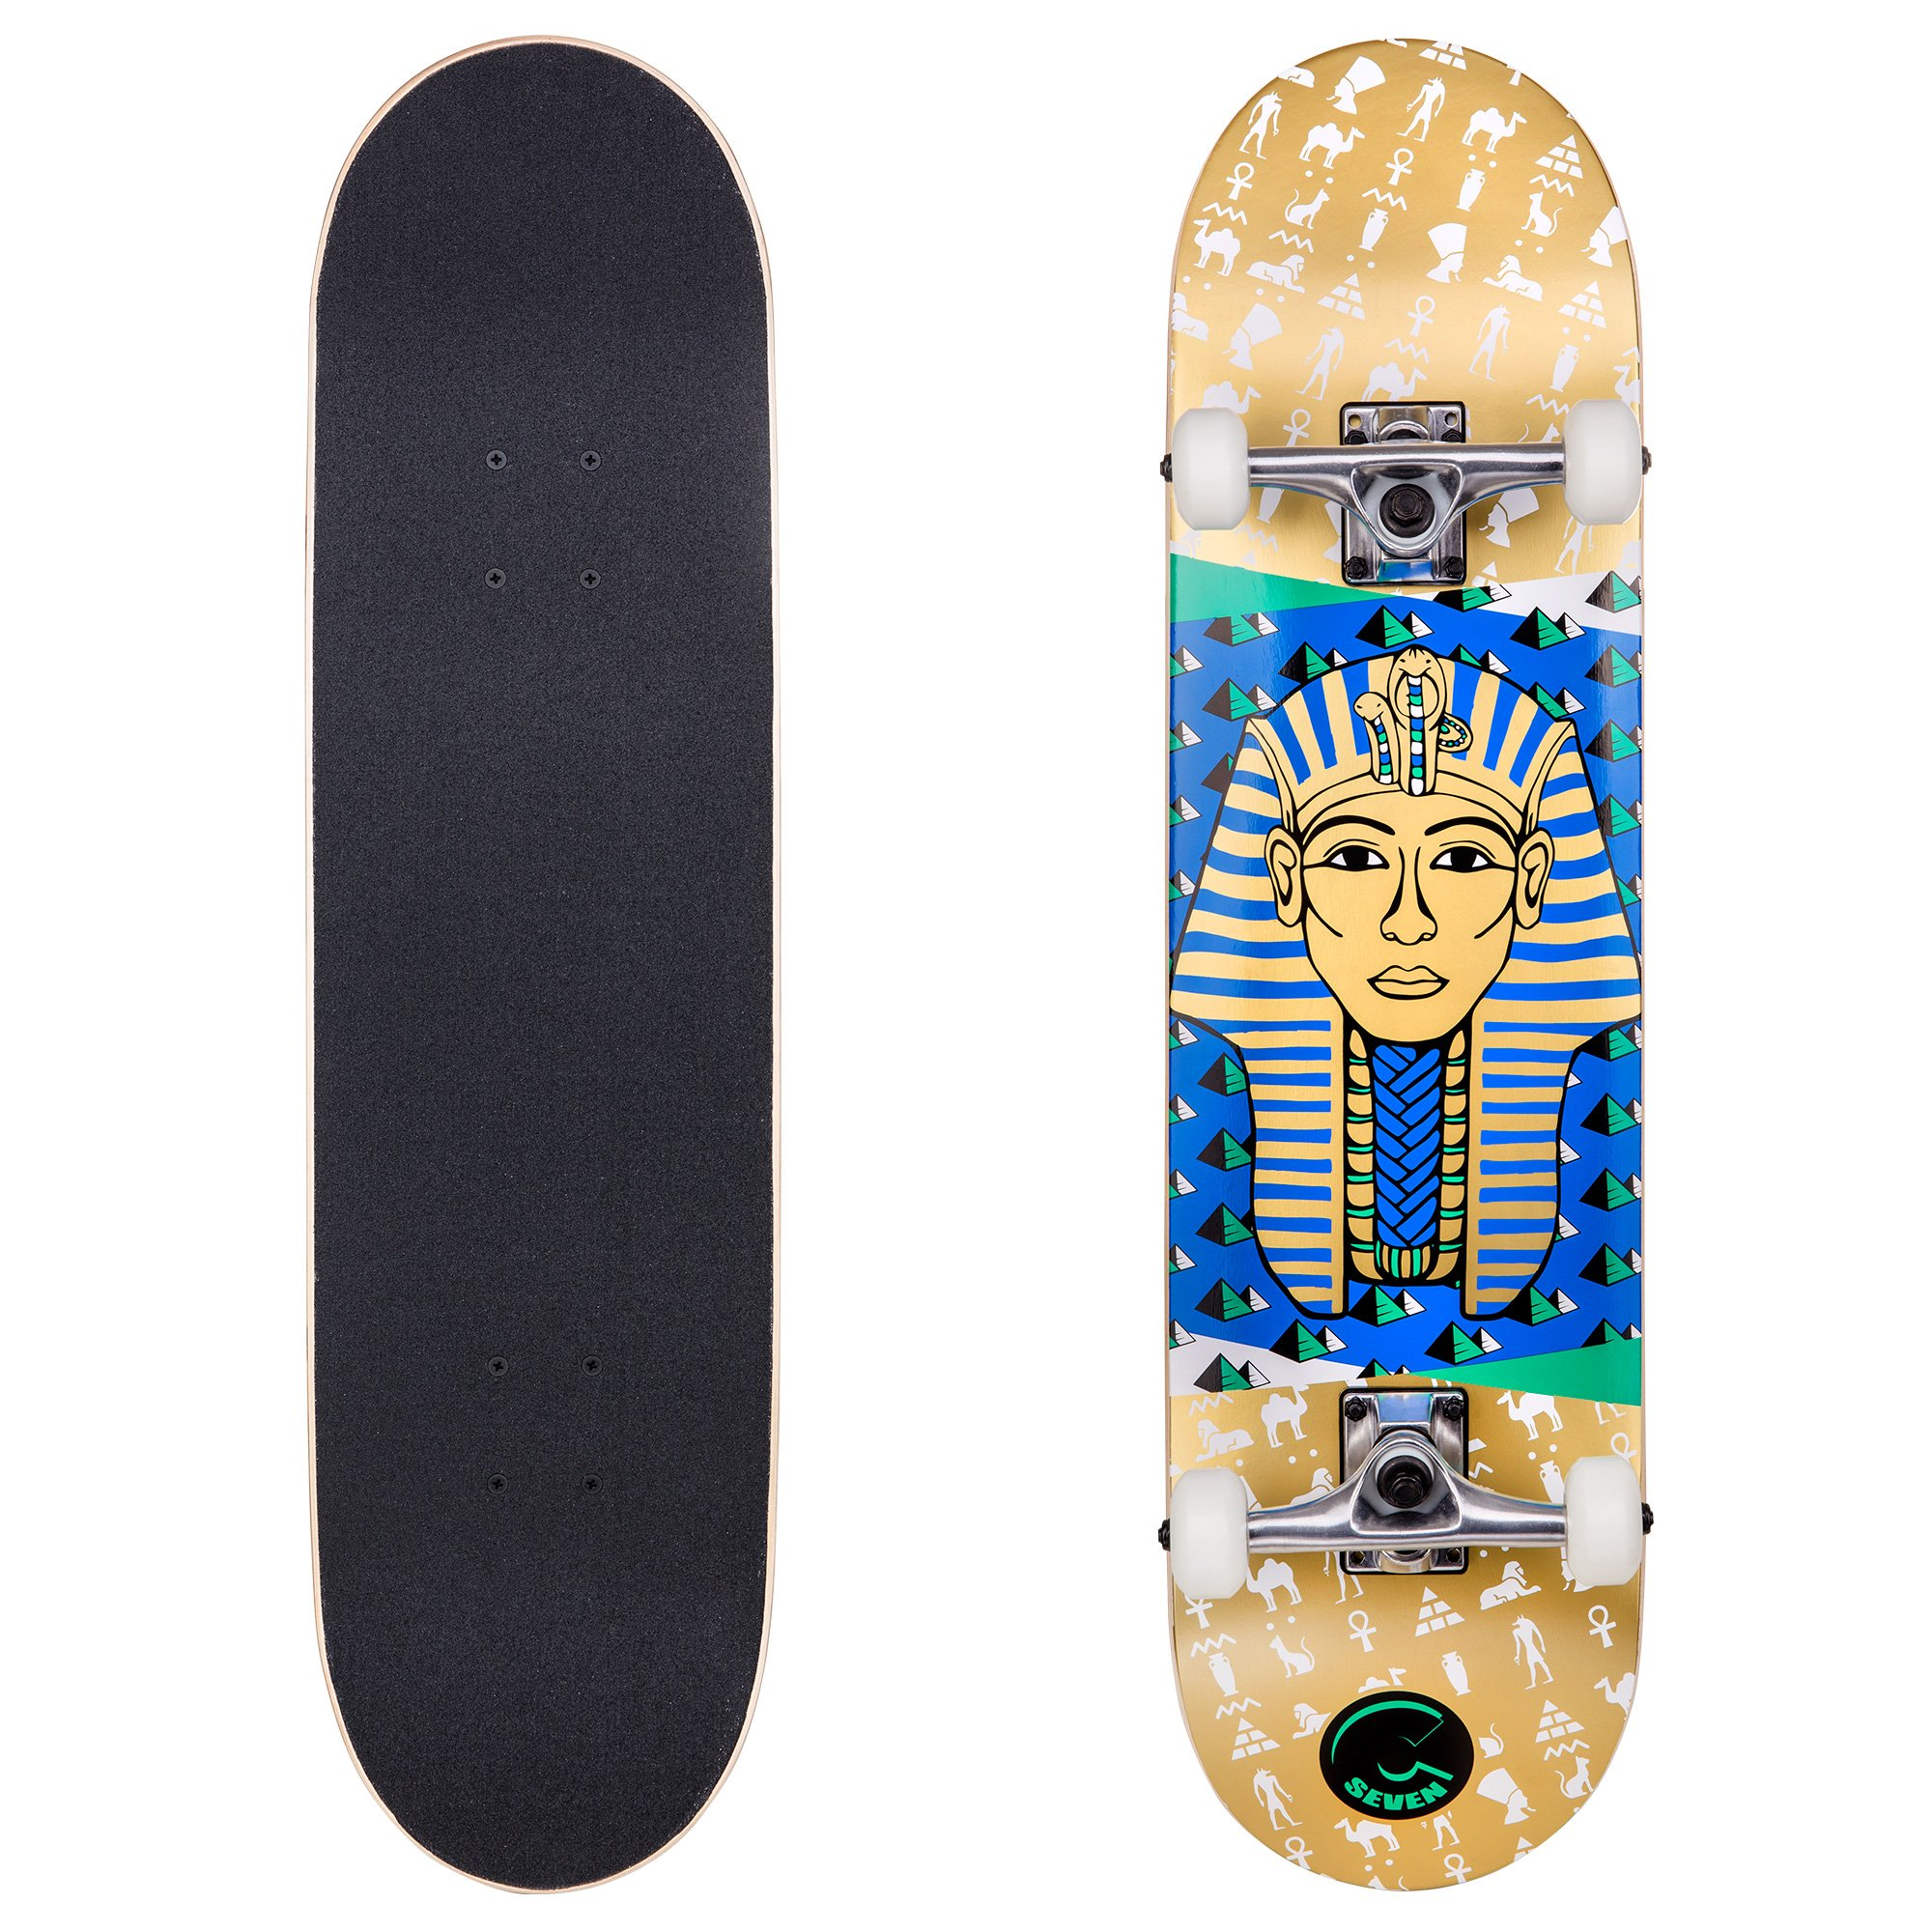 Cal 7 Complete Skateboard, Popsicle Double Kicktail Maple Deck, 31 Inches, Perfect for All Skate Styles in Various Graphic Designs (8'' Pharaoh)